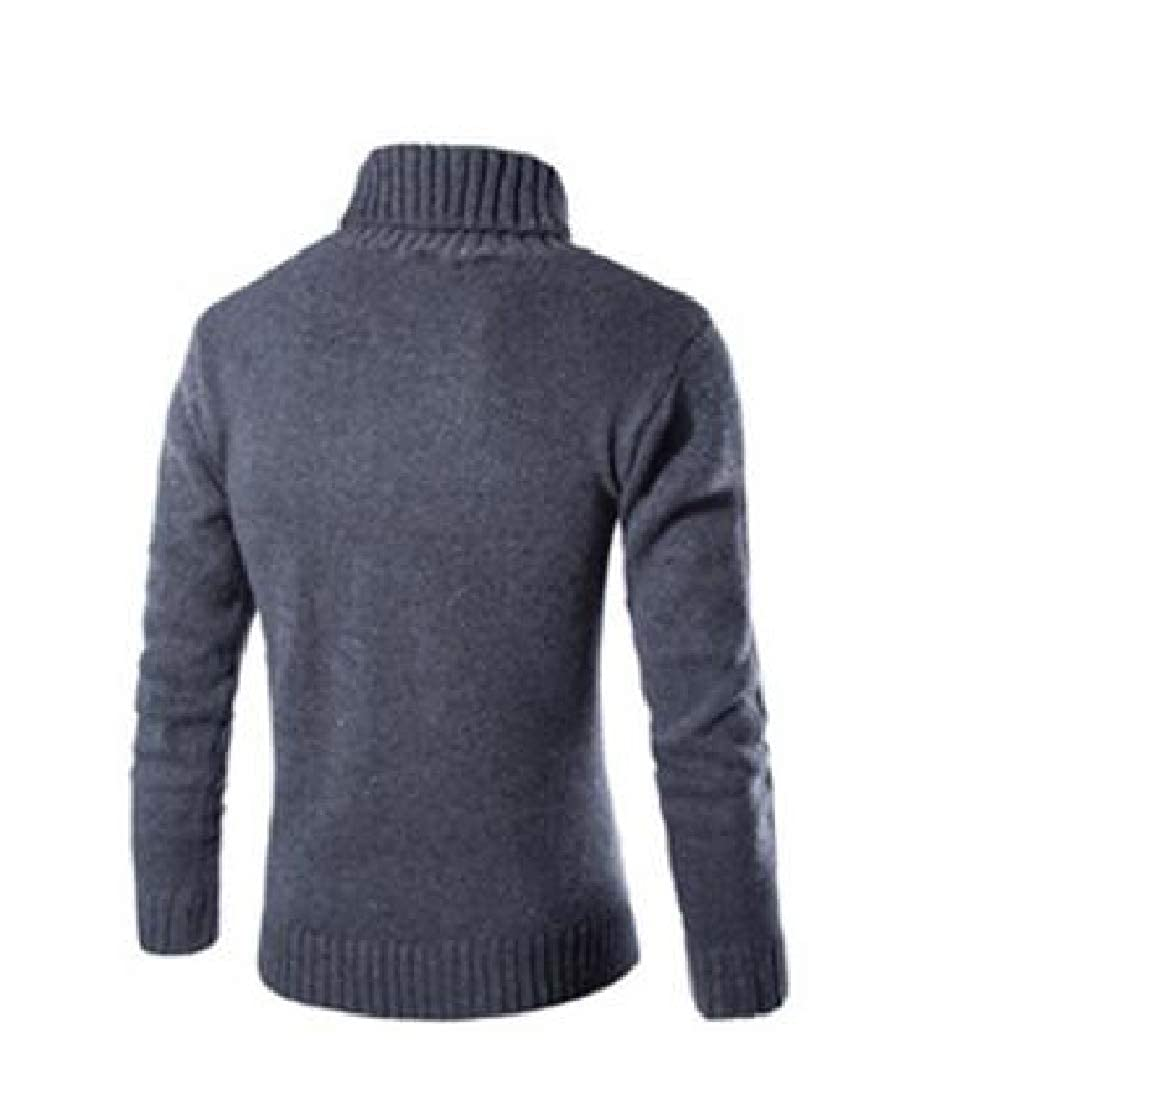 Mfasica Mens Casual Turtleneck Solid Pullover Fashional Sweater Top